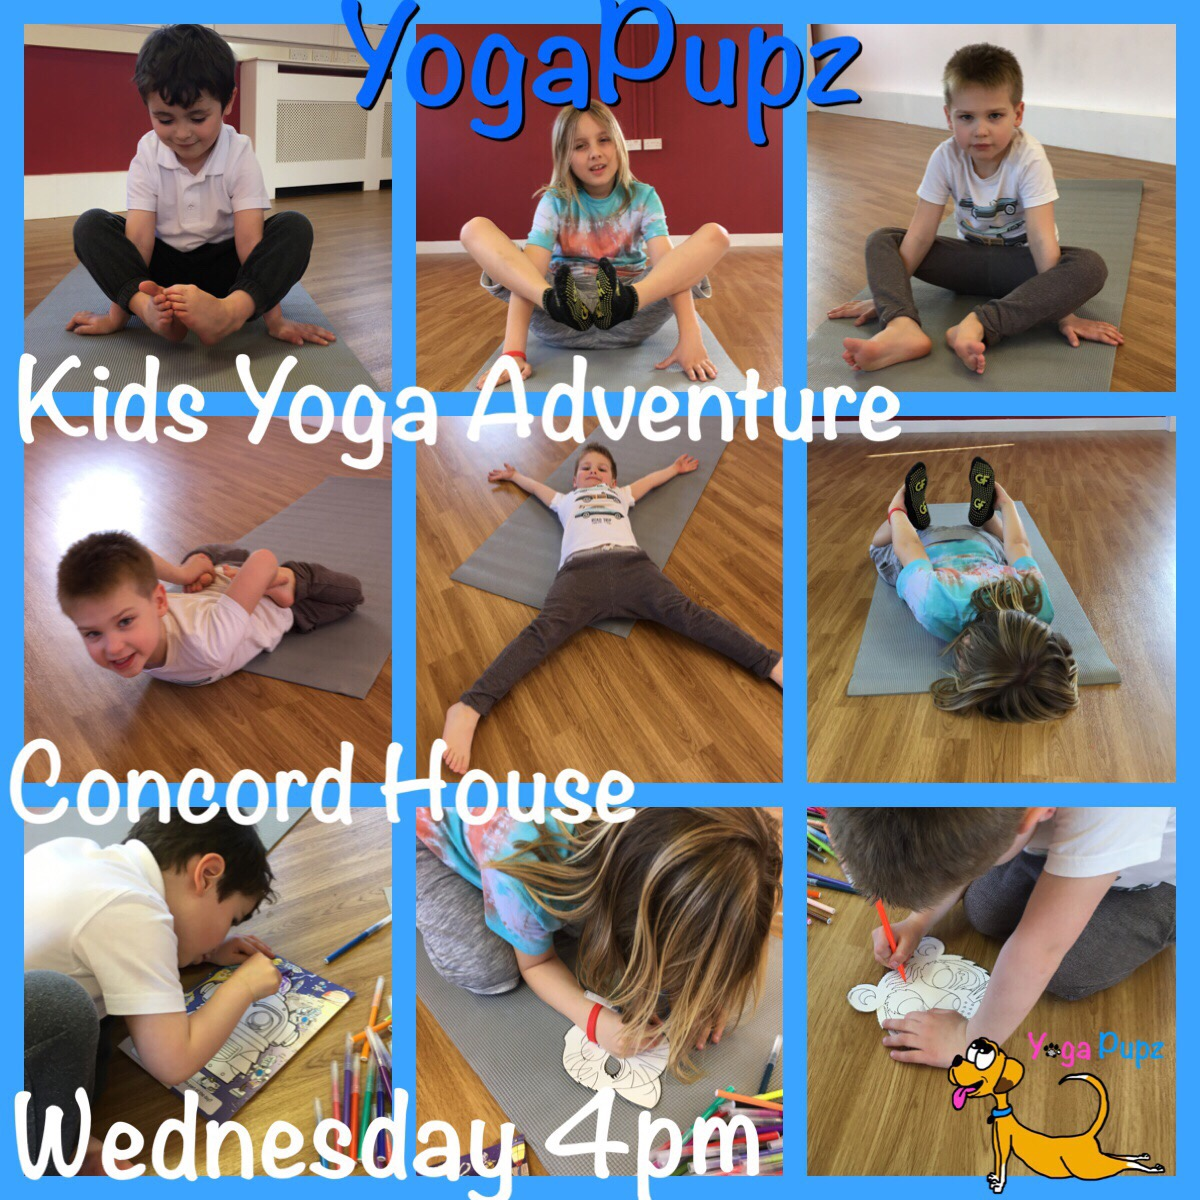 Kids Yoga Classes - Yoga poses for kids and parents